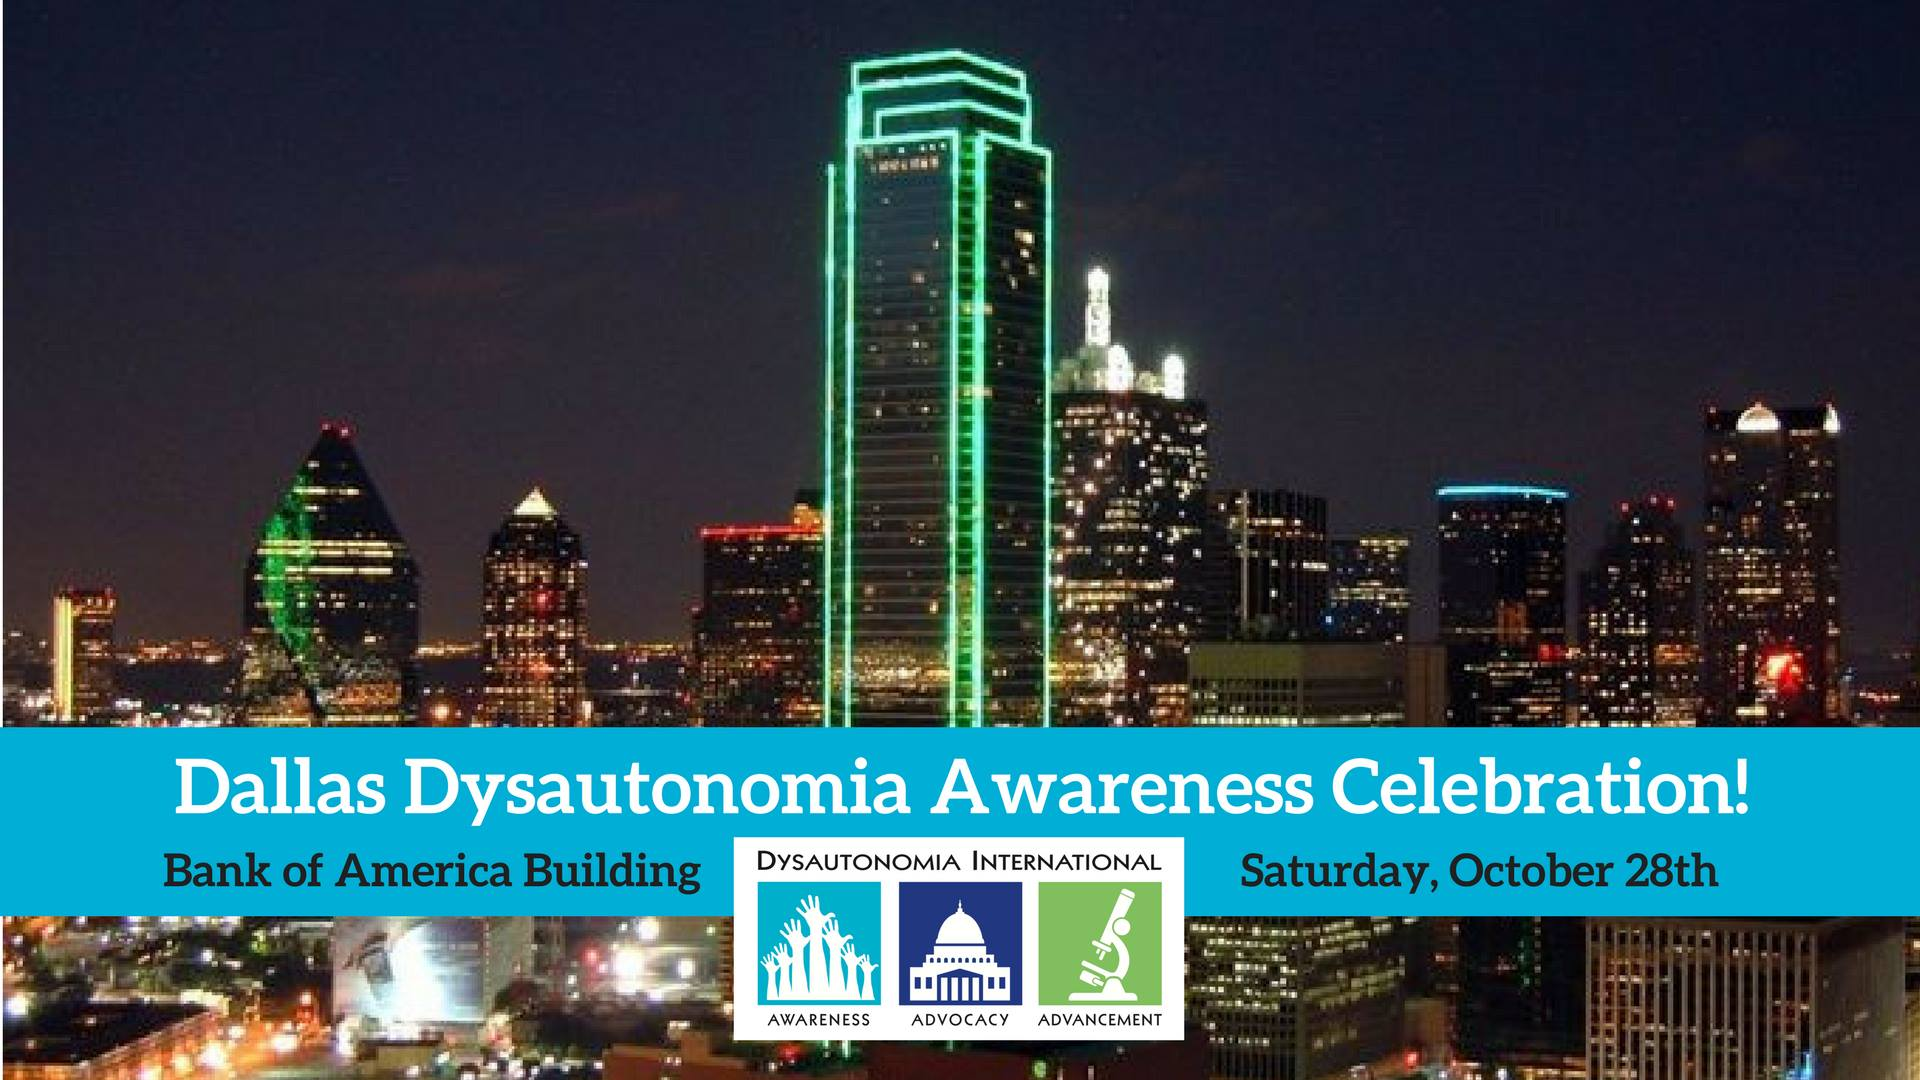 Dallas skyline shines turquoise for millions living with Dysautonomia